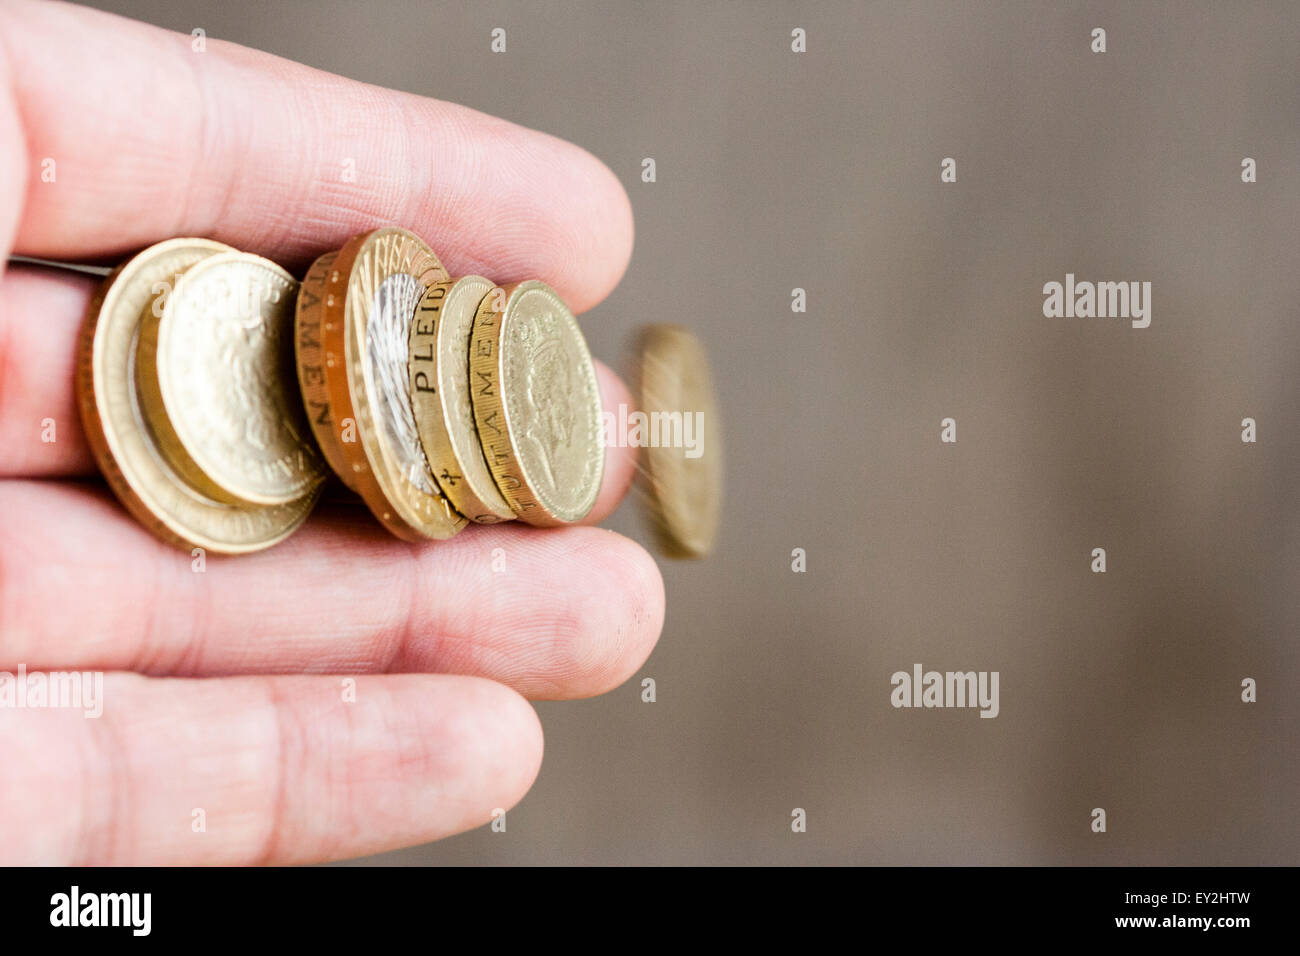 British Pound Coins Blurred By Motion As They Slip Away Out Of